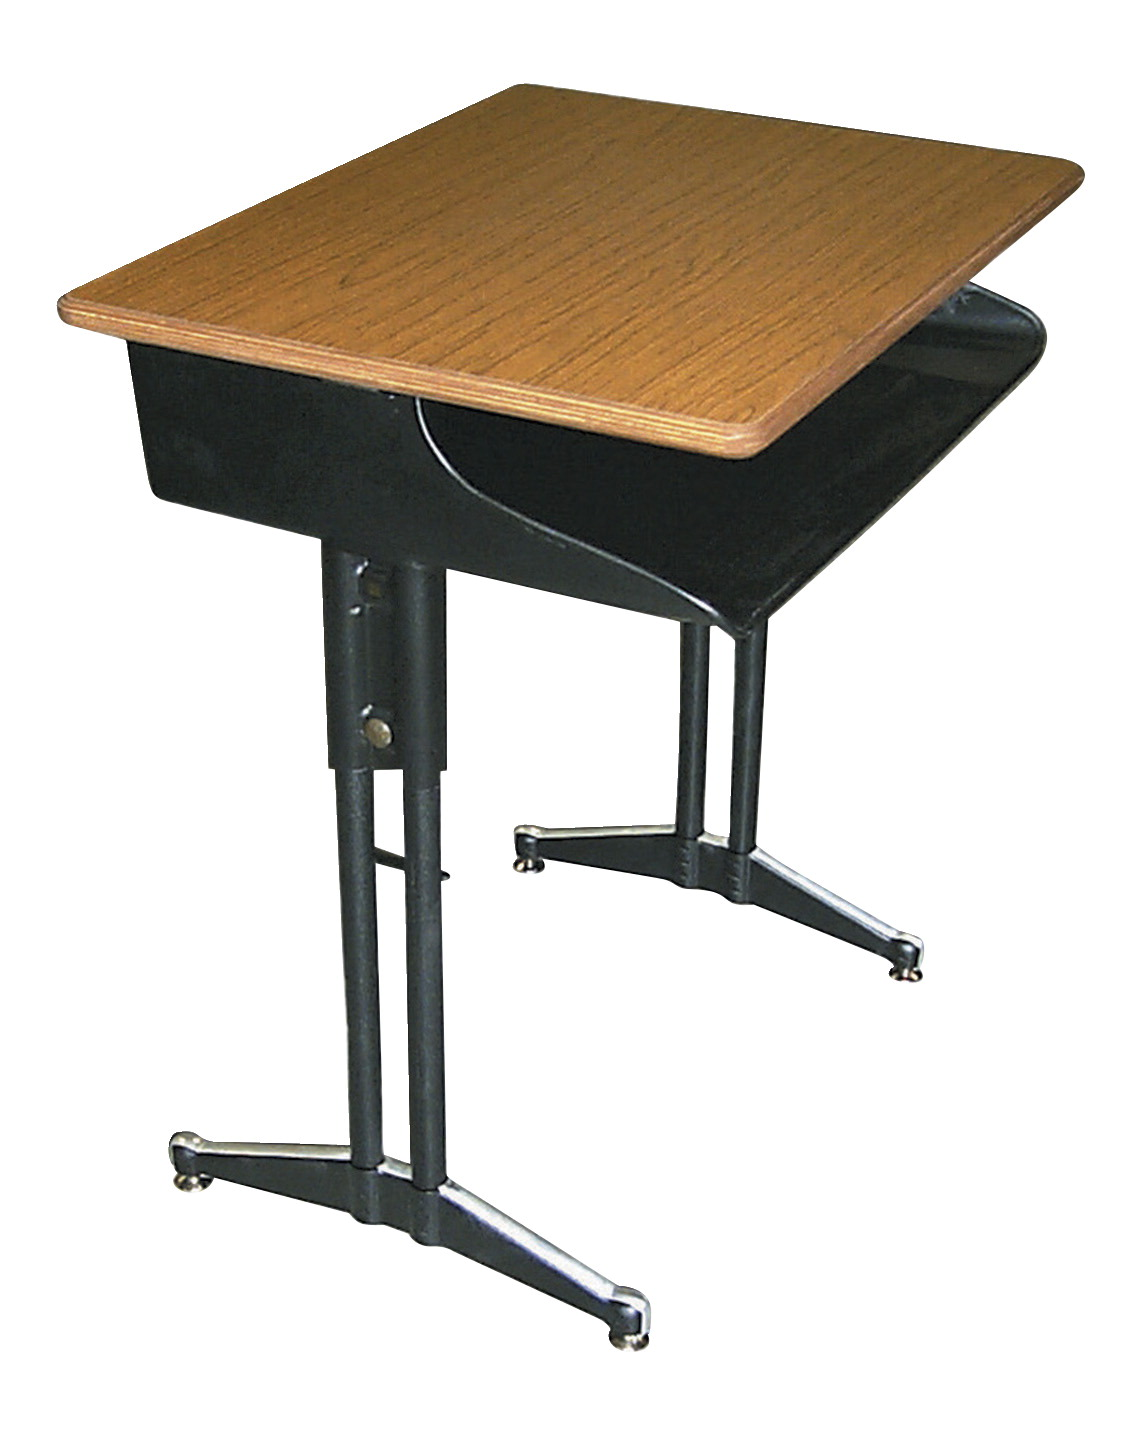 Classroom Select Classic 649 Open Front Desk, 18 x 24 Inch Plastic Top, Various Options